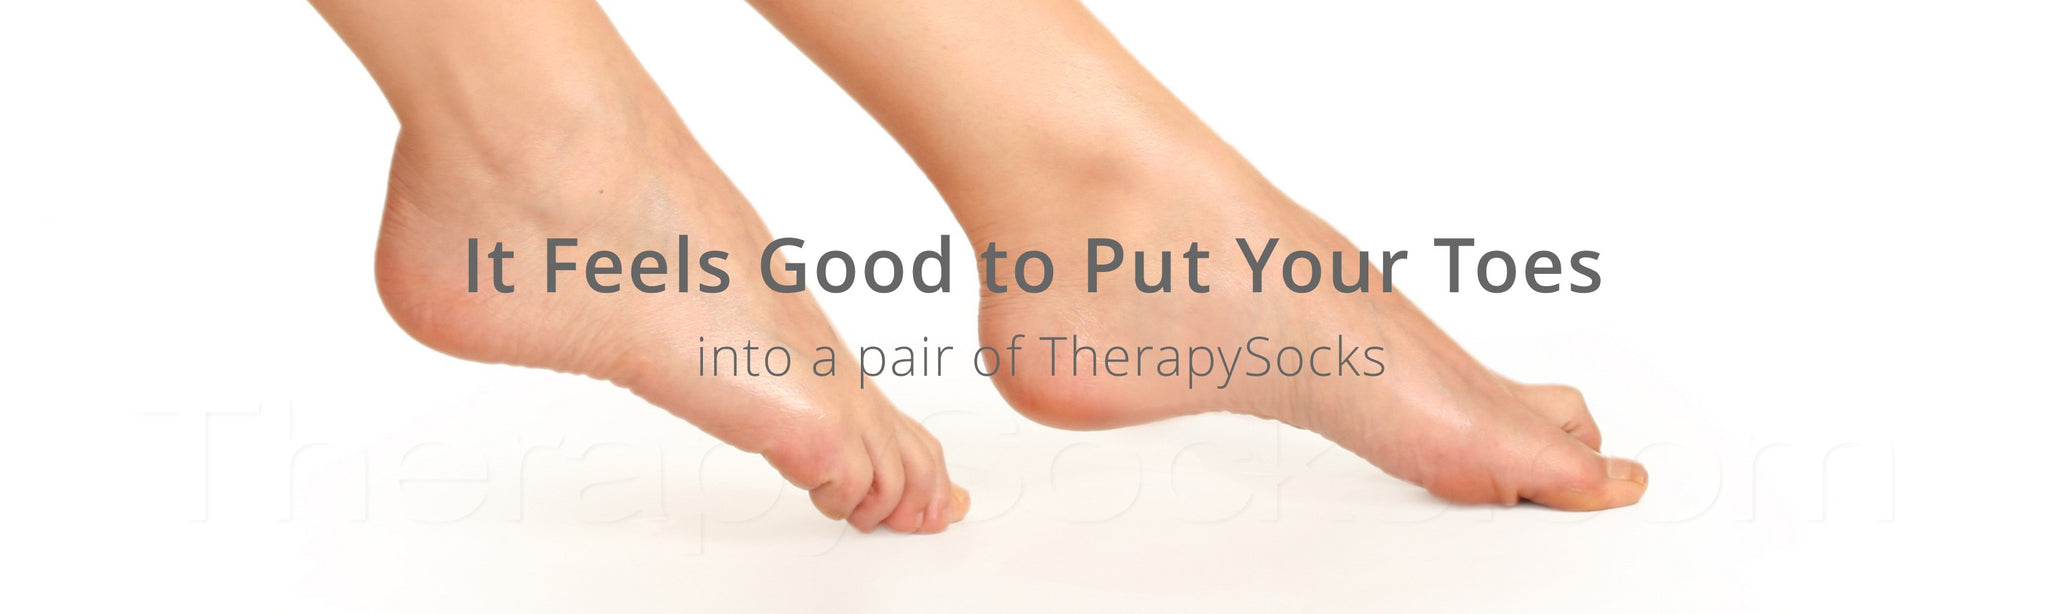 Slide your toes into a pair of TherapySocks